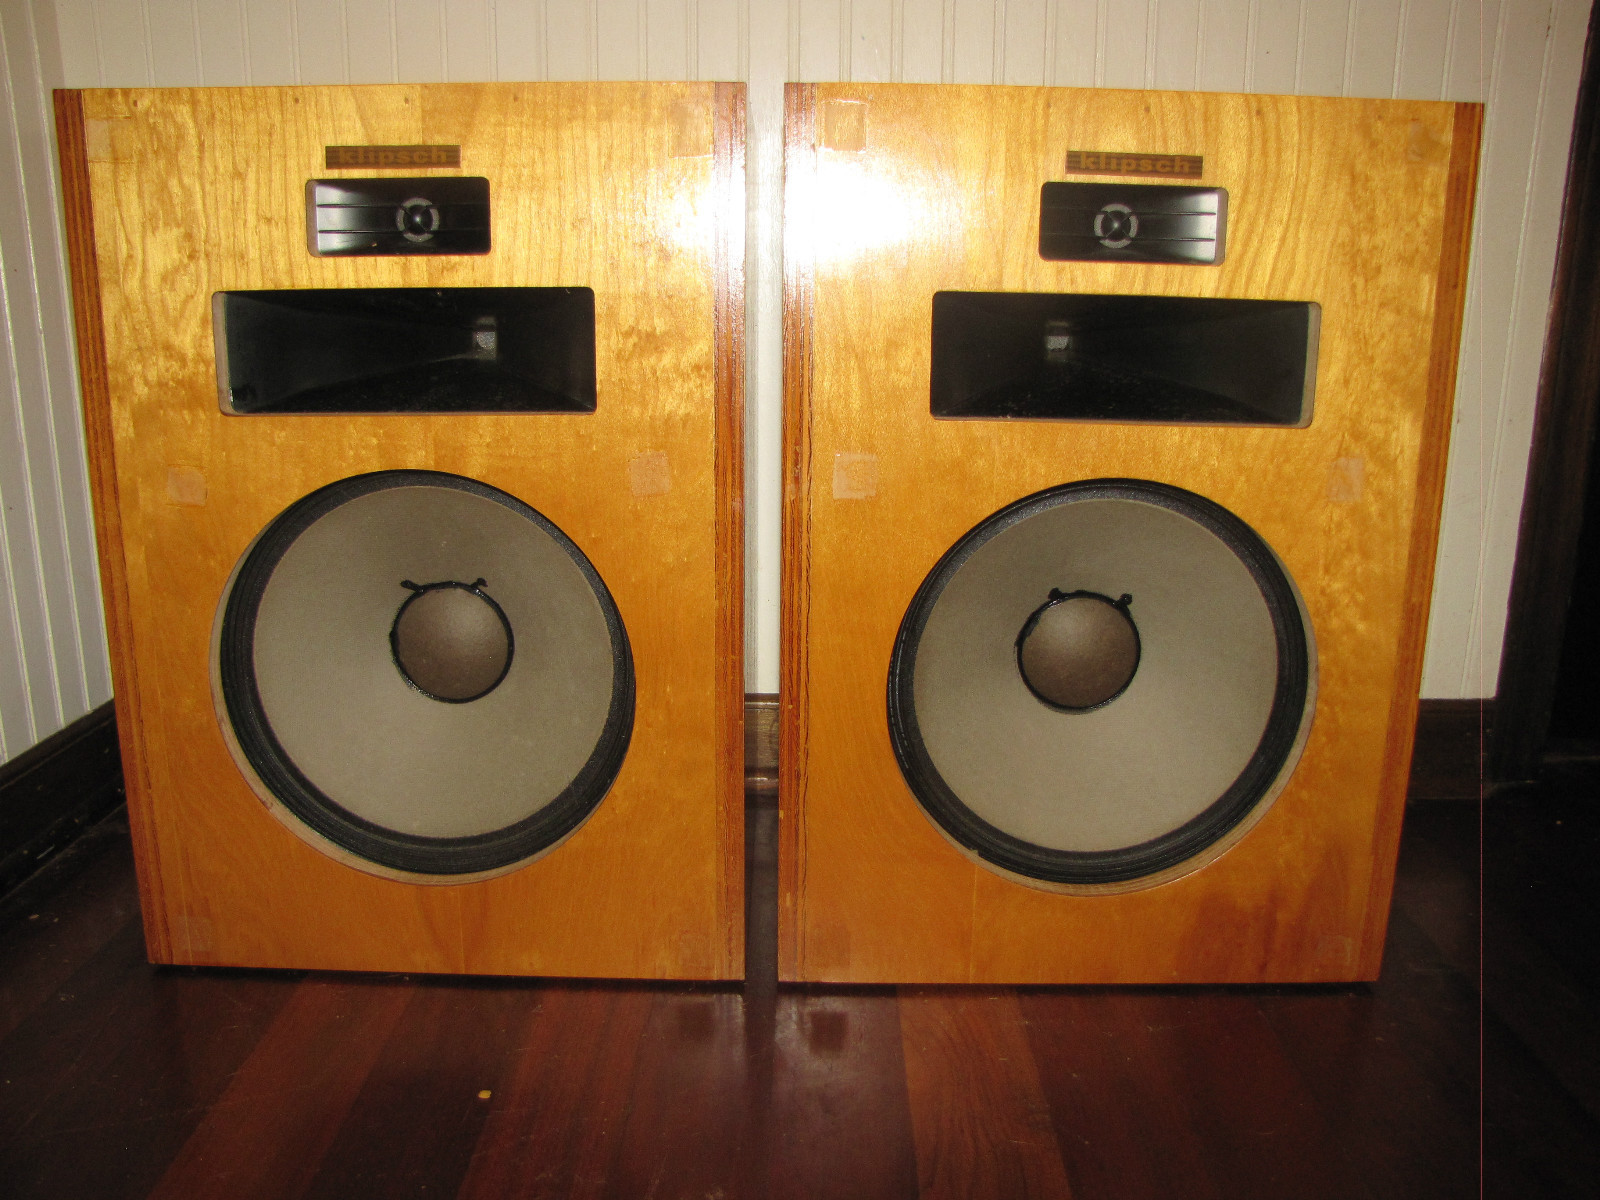 http://audiophilereview.com/images/bass94a.jpg